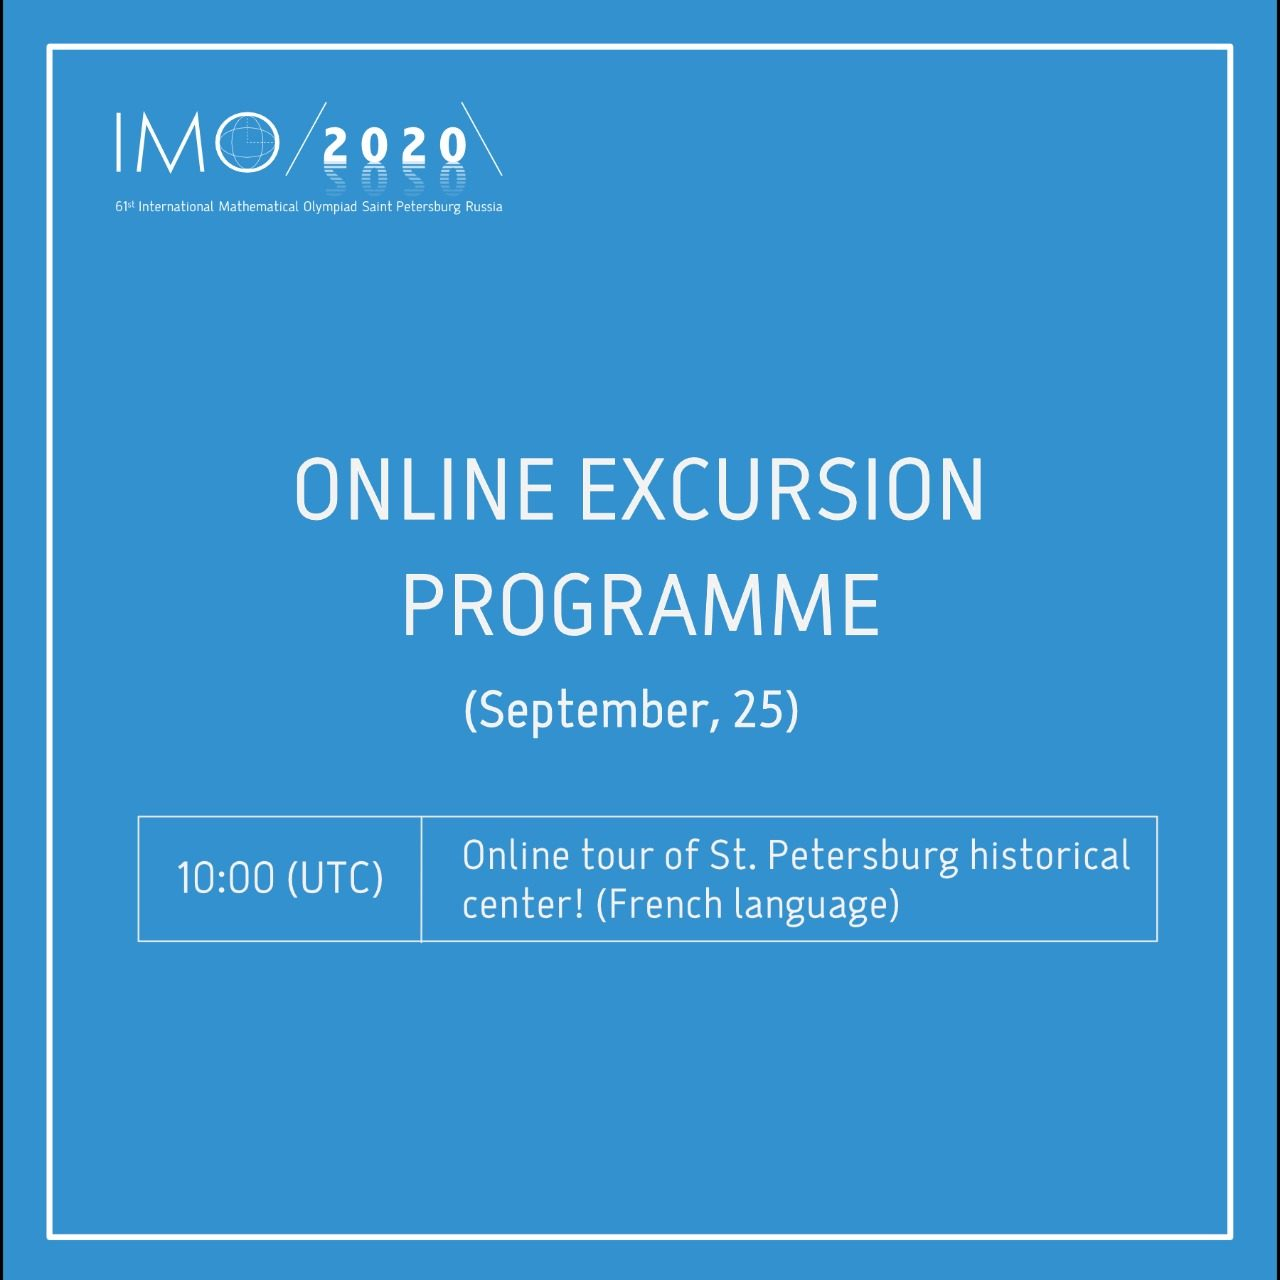 Online excursion programme